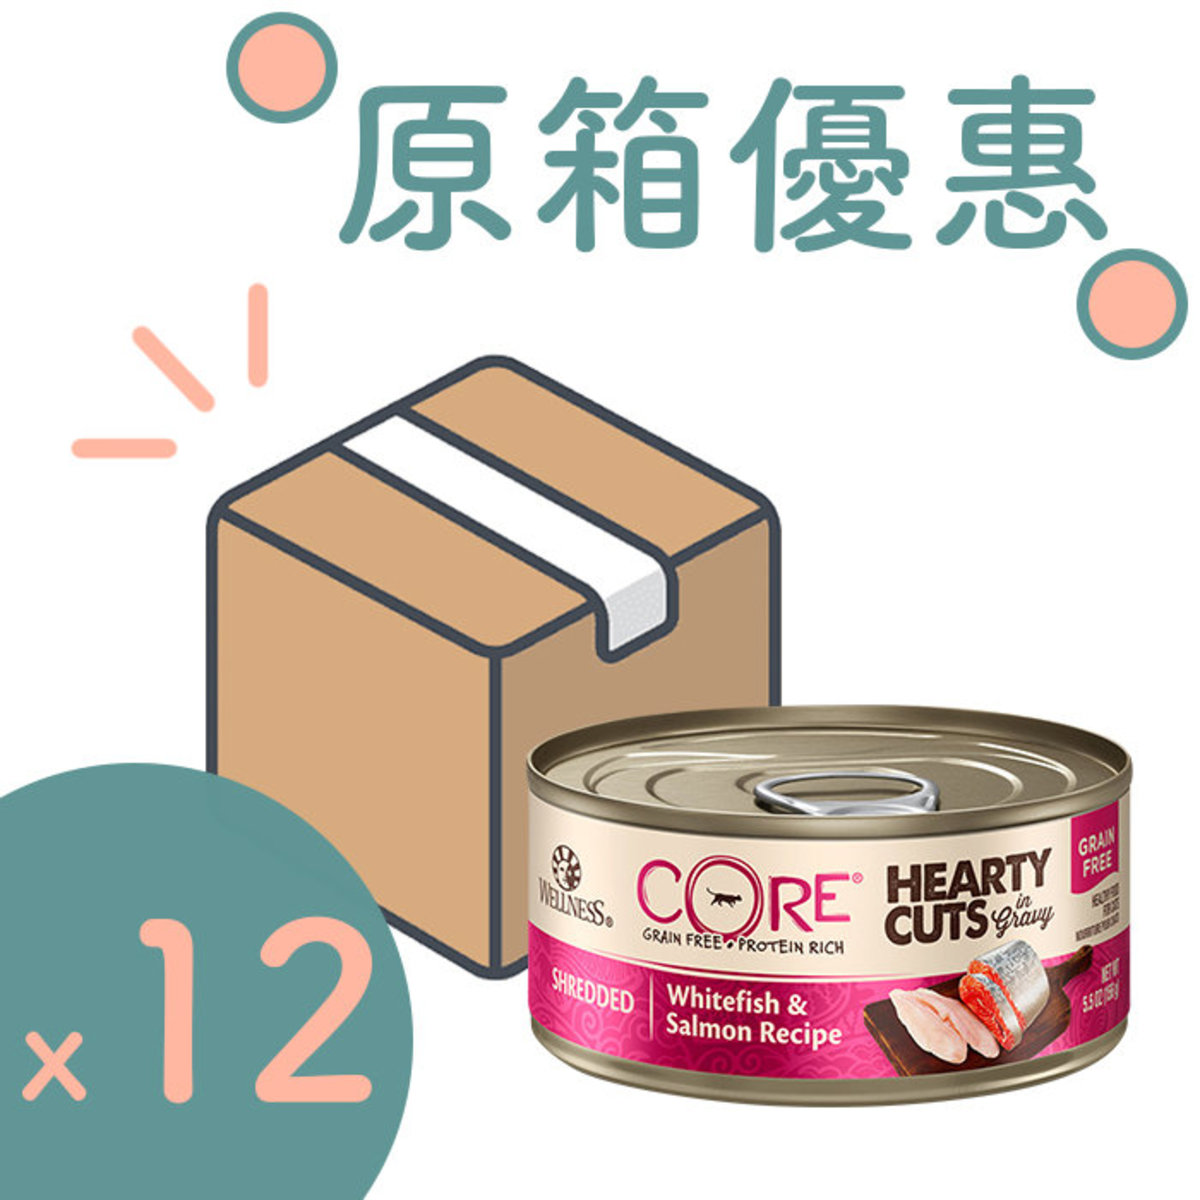 [12PCS SET] Hearty Cuts Grain Free Shredded Whitefish & Salmon Recipe Cat Canned 5.5oz